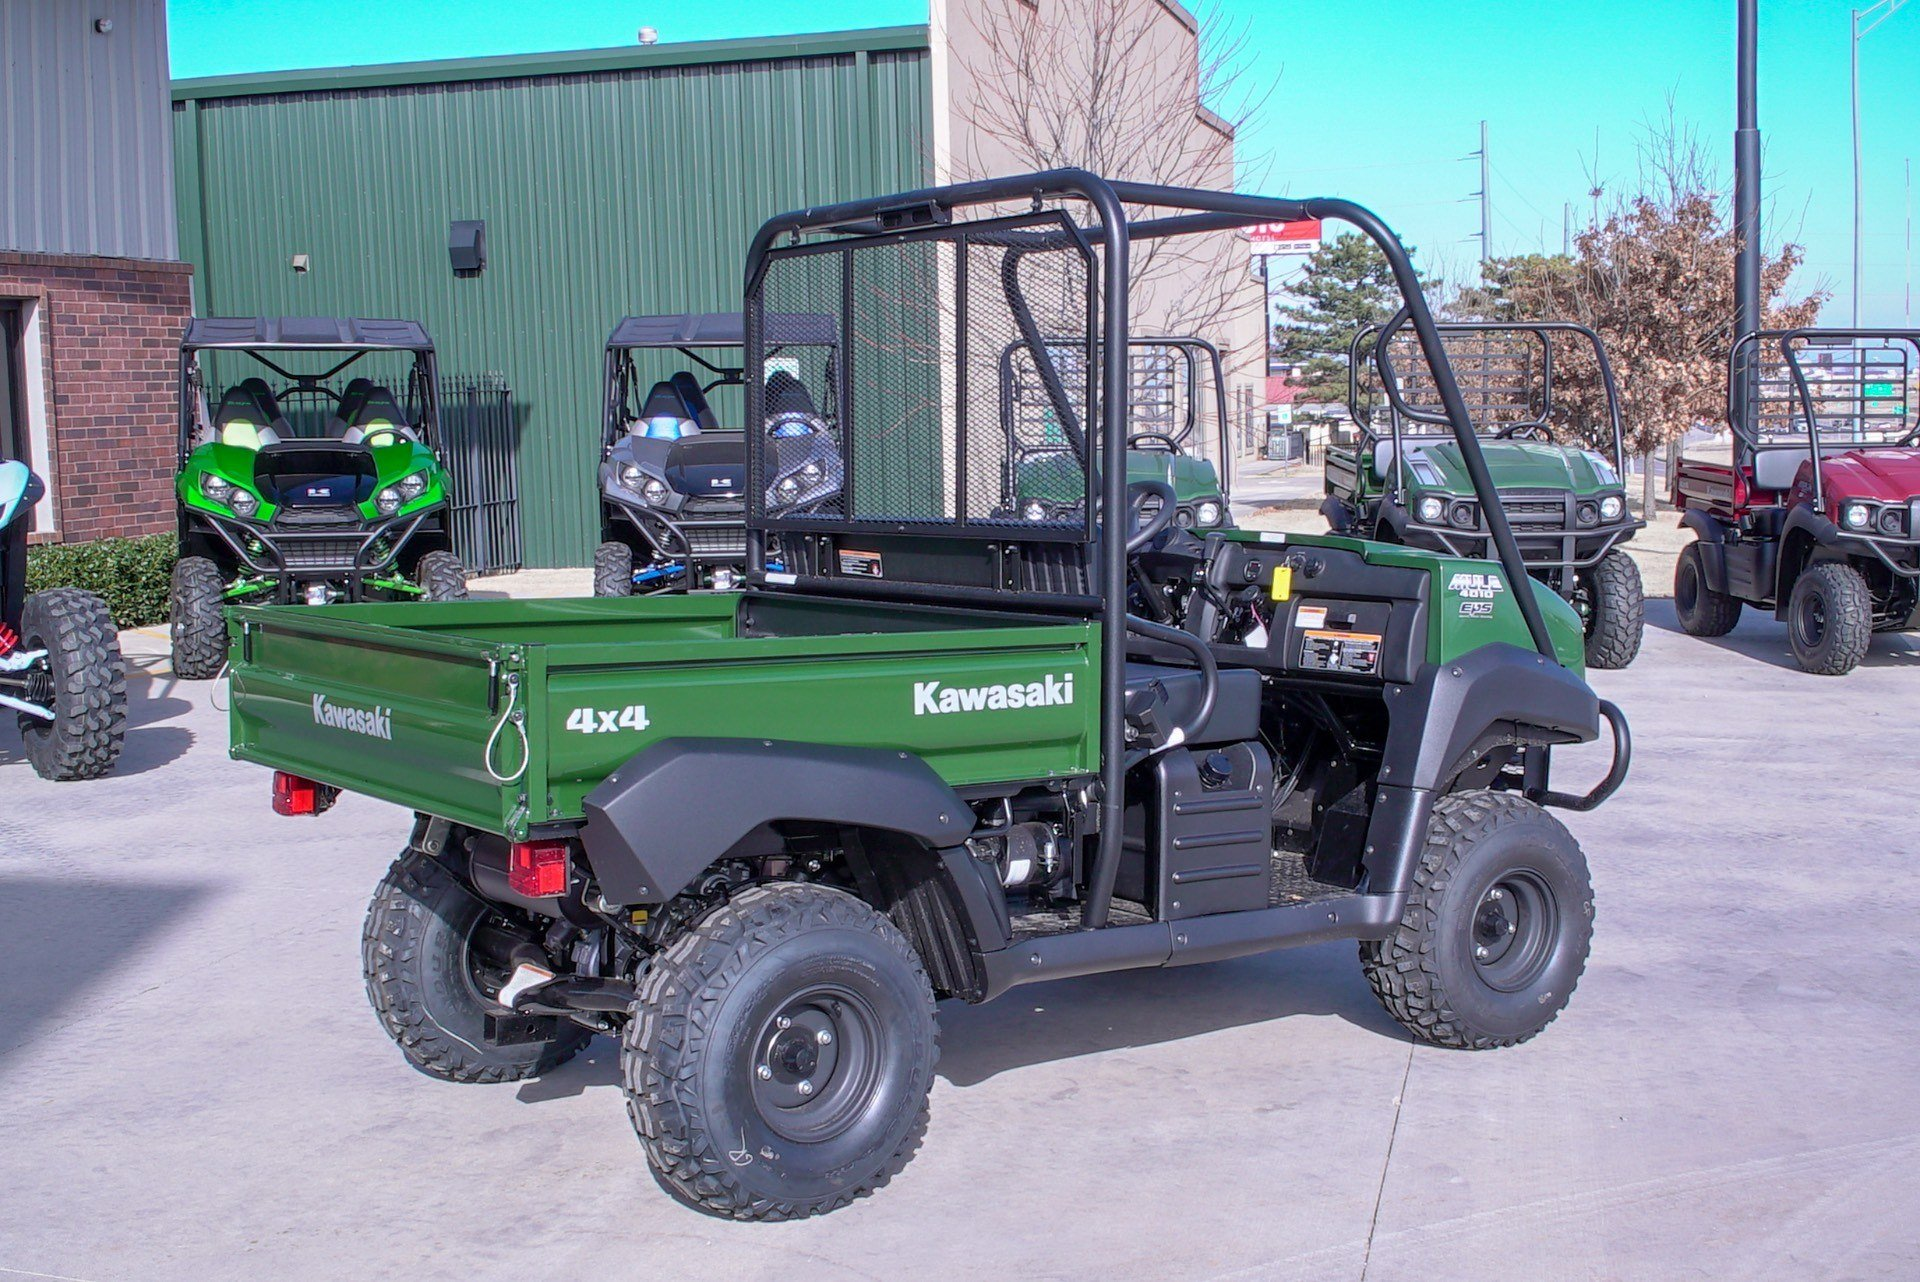 2020 Kawasaki Mule 4010 4x4 in Oklahoma City, Oklahoma - Photo 3